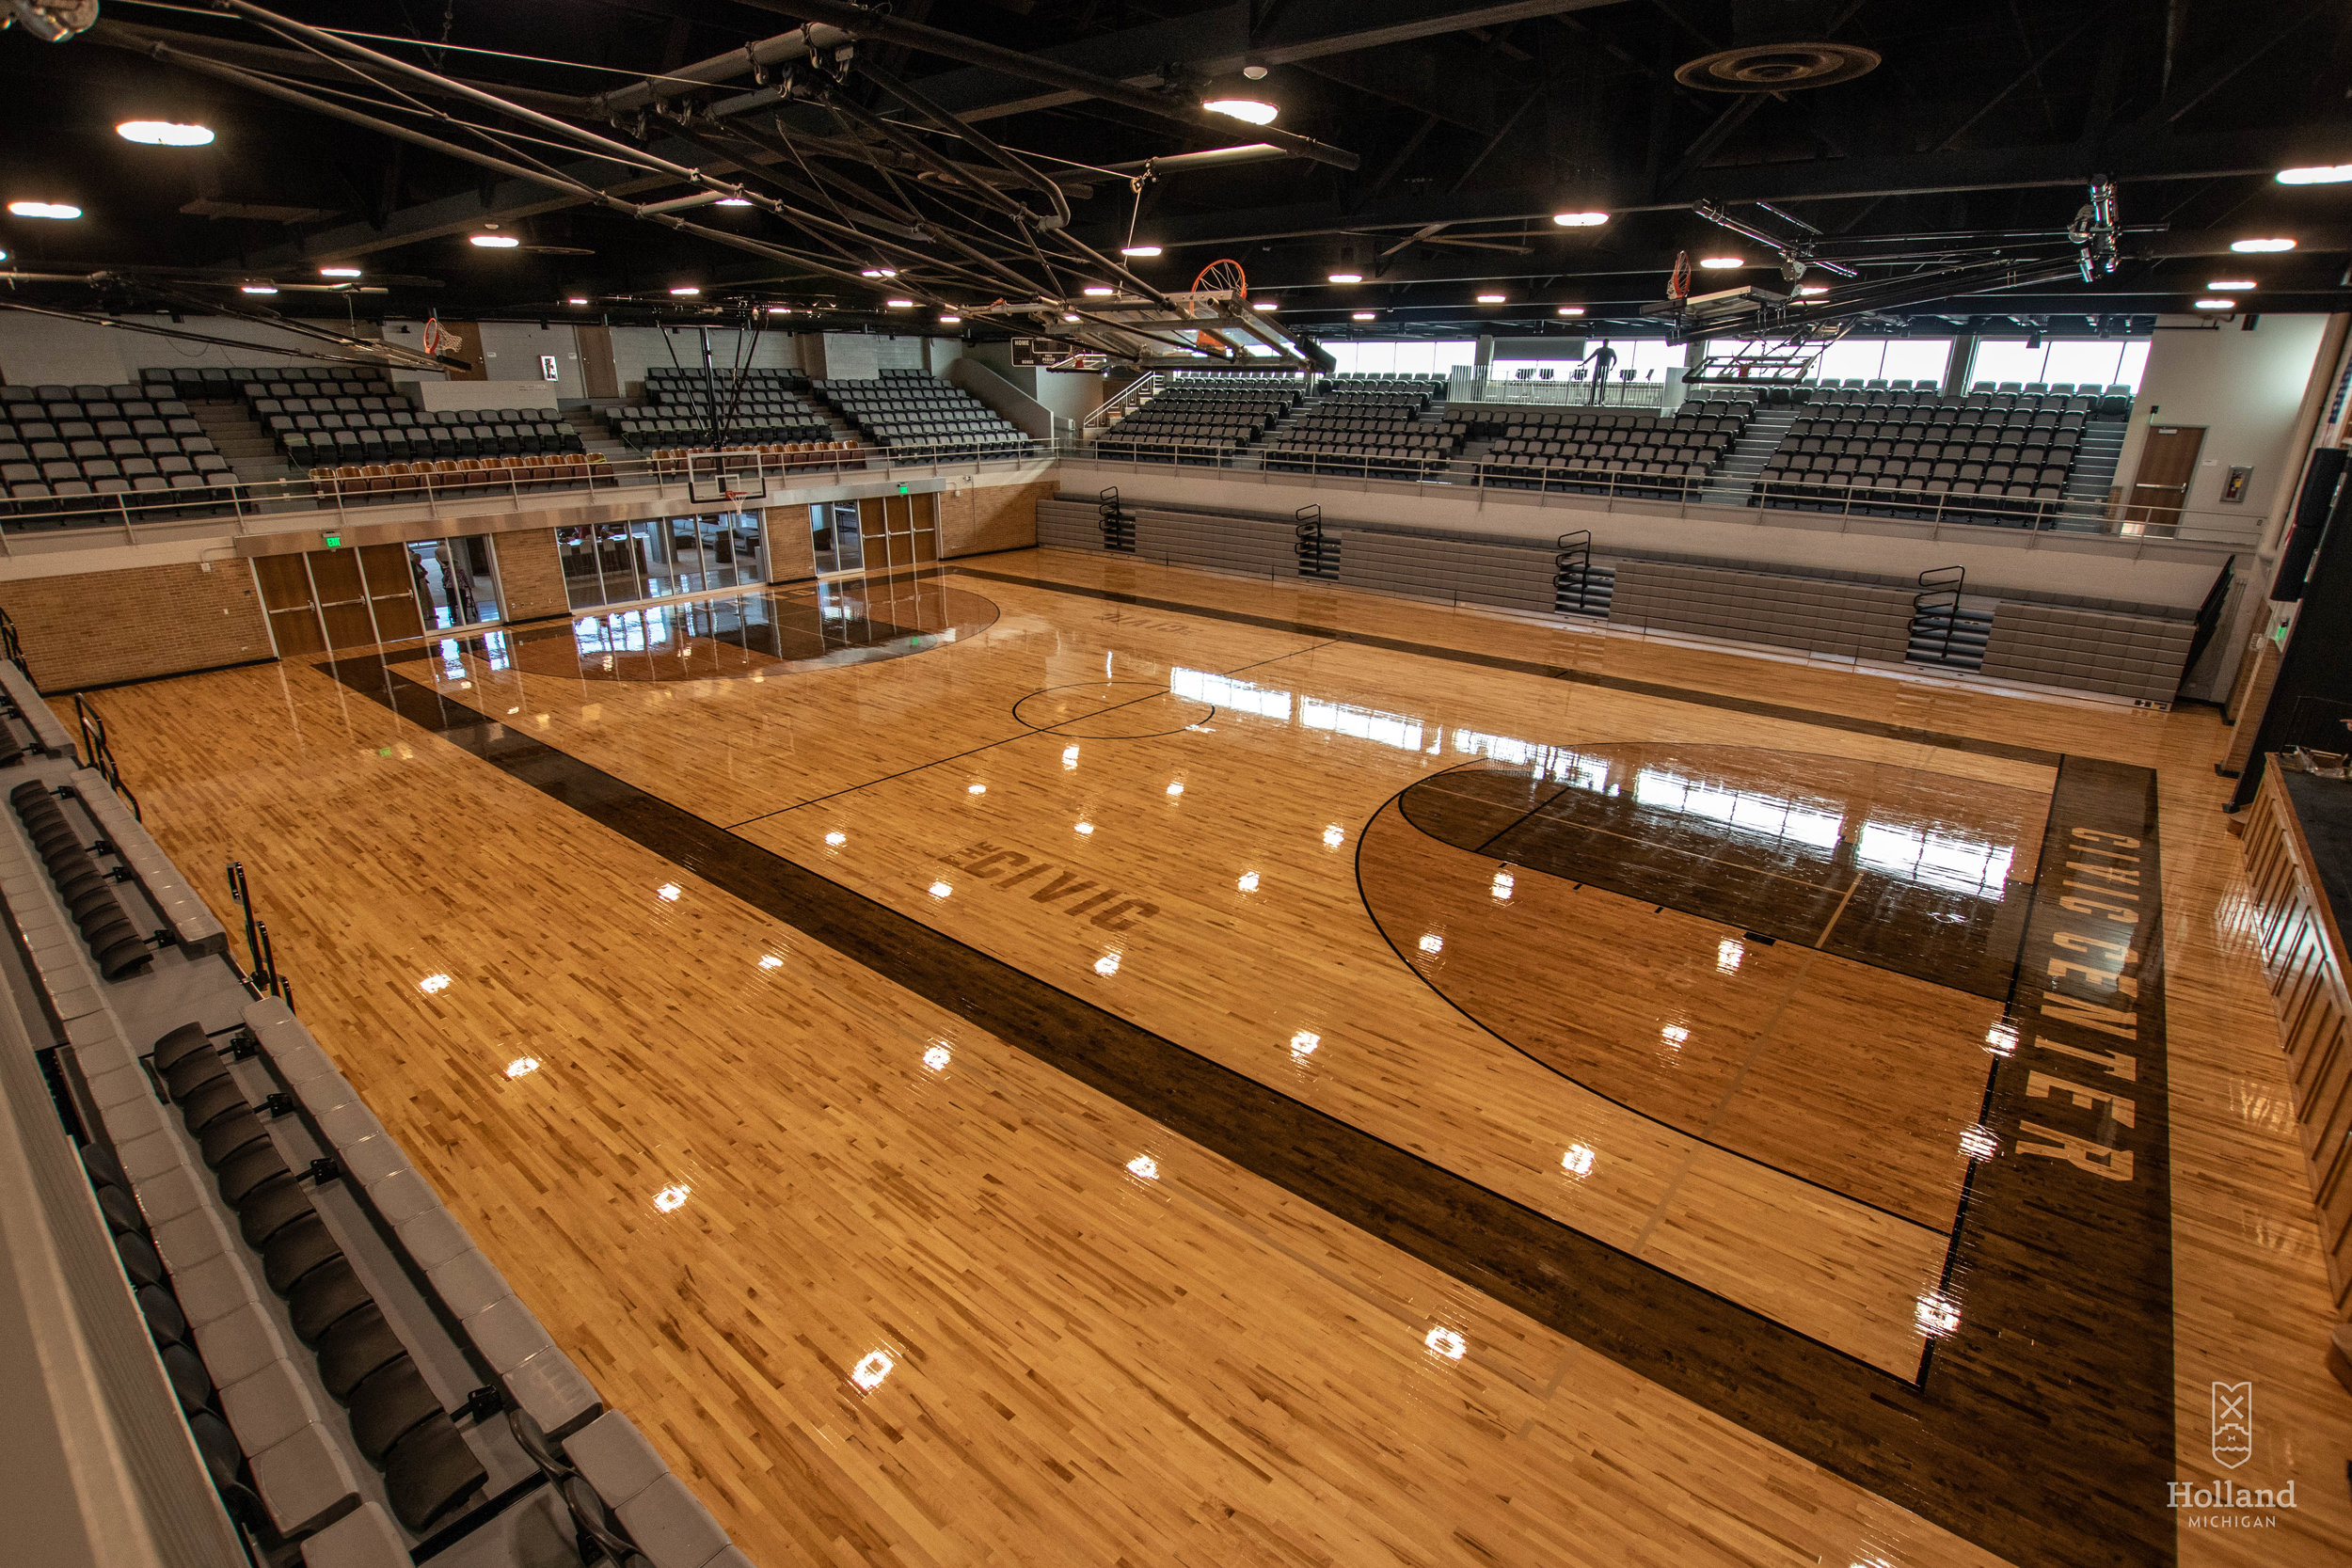 Commercial gym installation - The Holland Civic Center